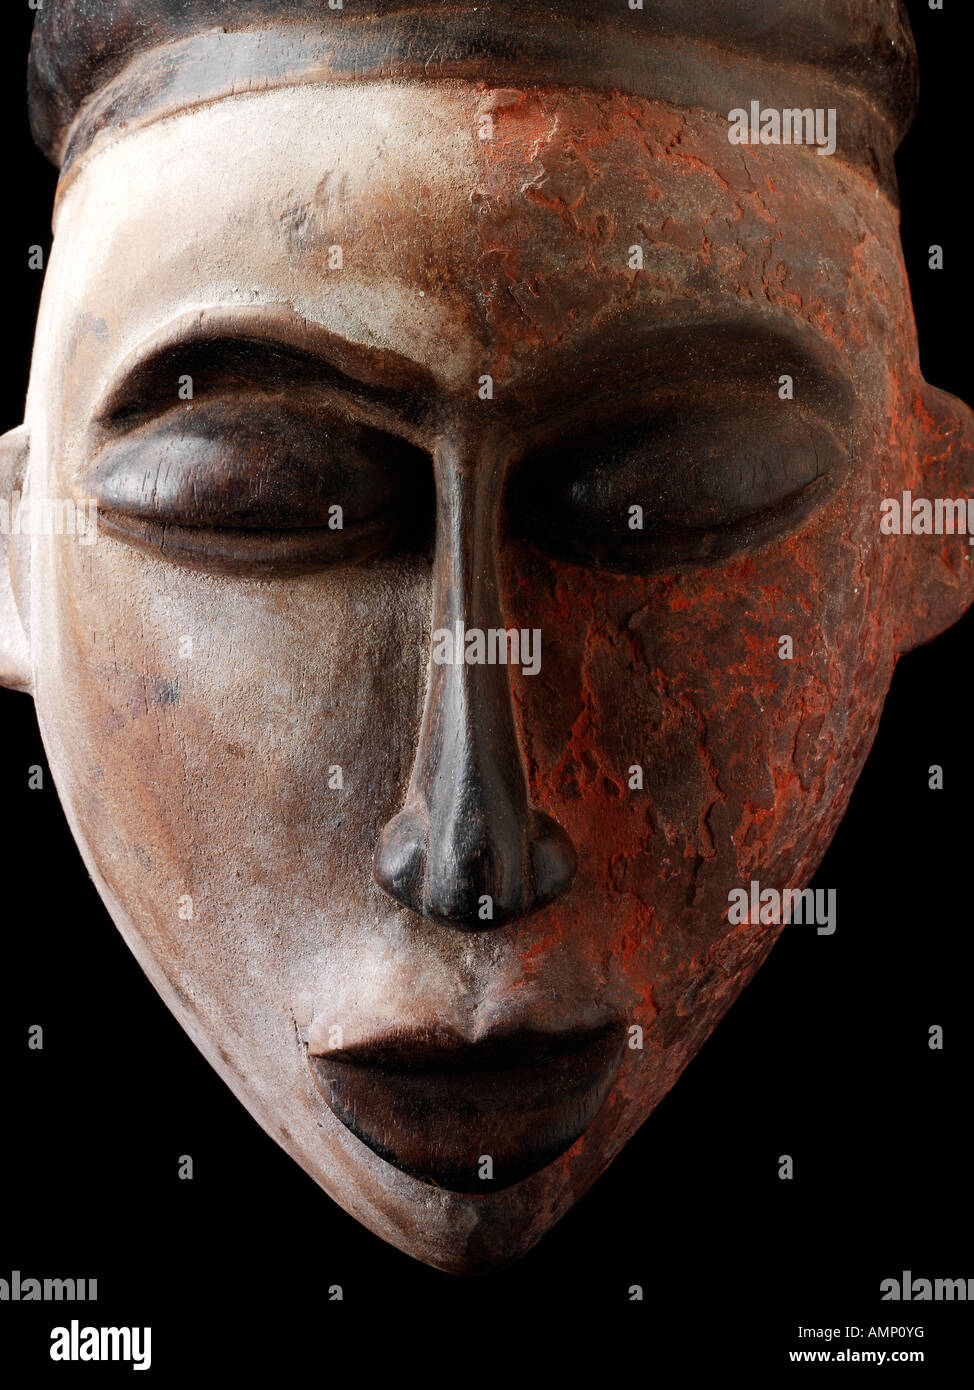 Ethnic traditional African mask. Art and craft. - Stock Image